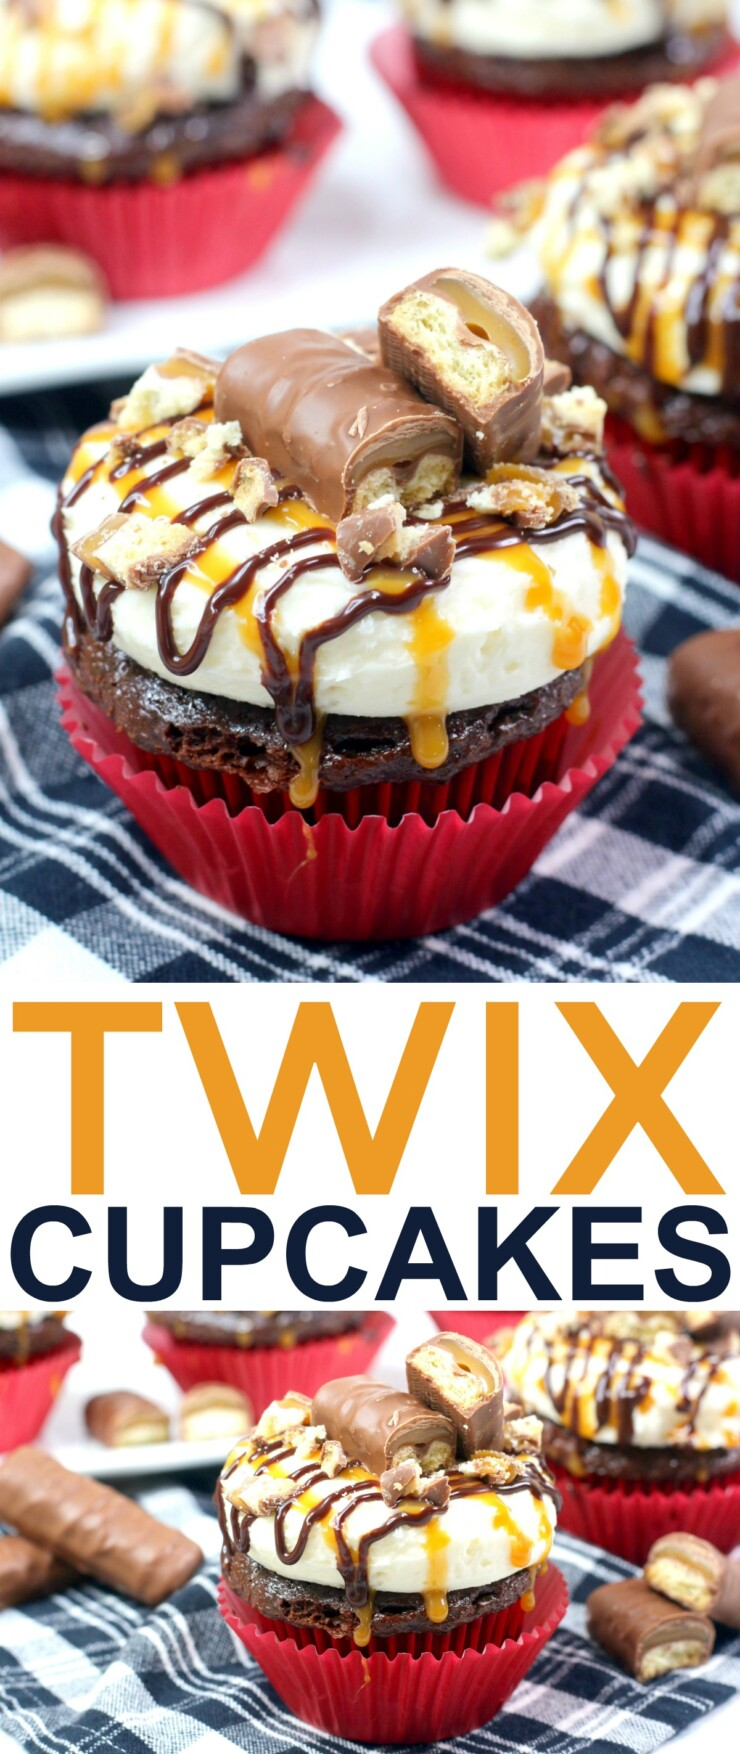 This decadent Twix cupcakes recipe features a from-scratch chocolate cupcake recipe topped with a luscious caramel buttercream.